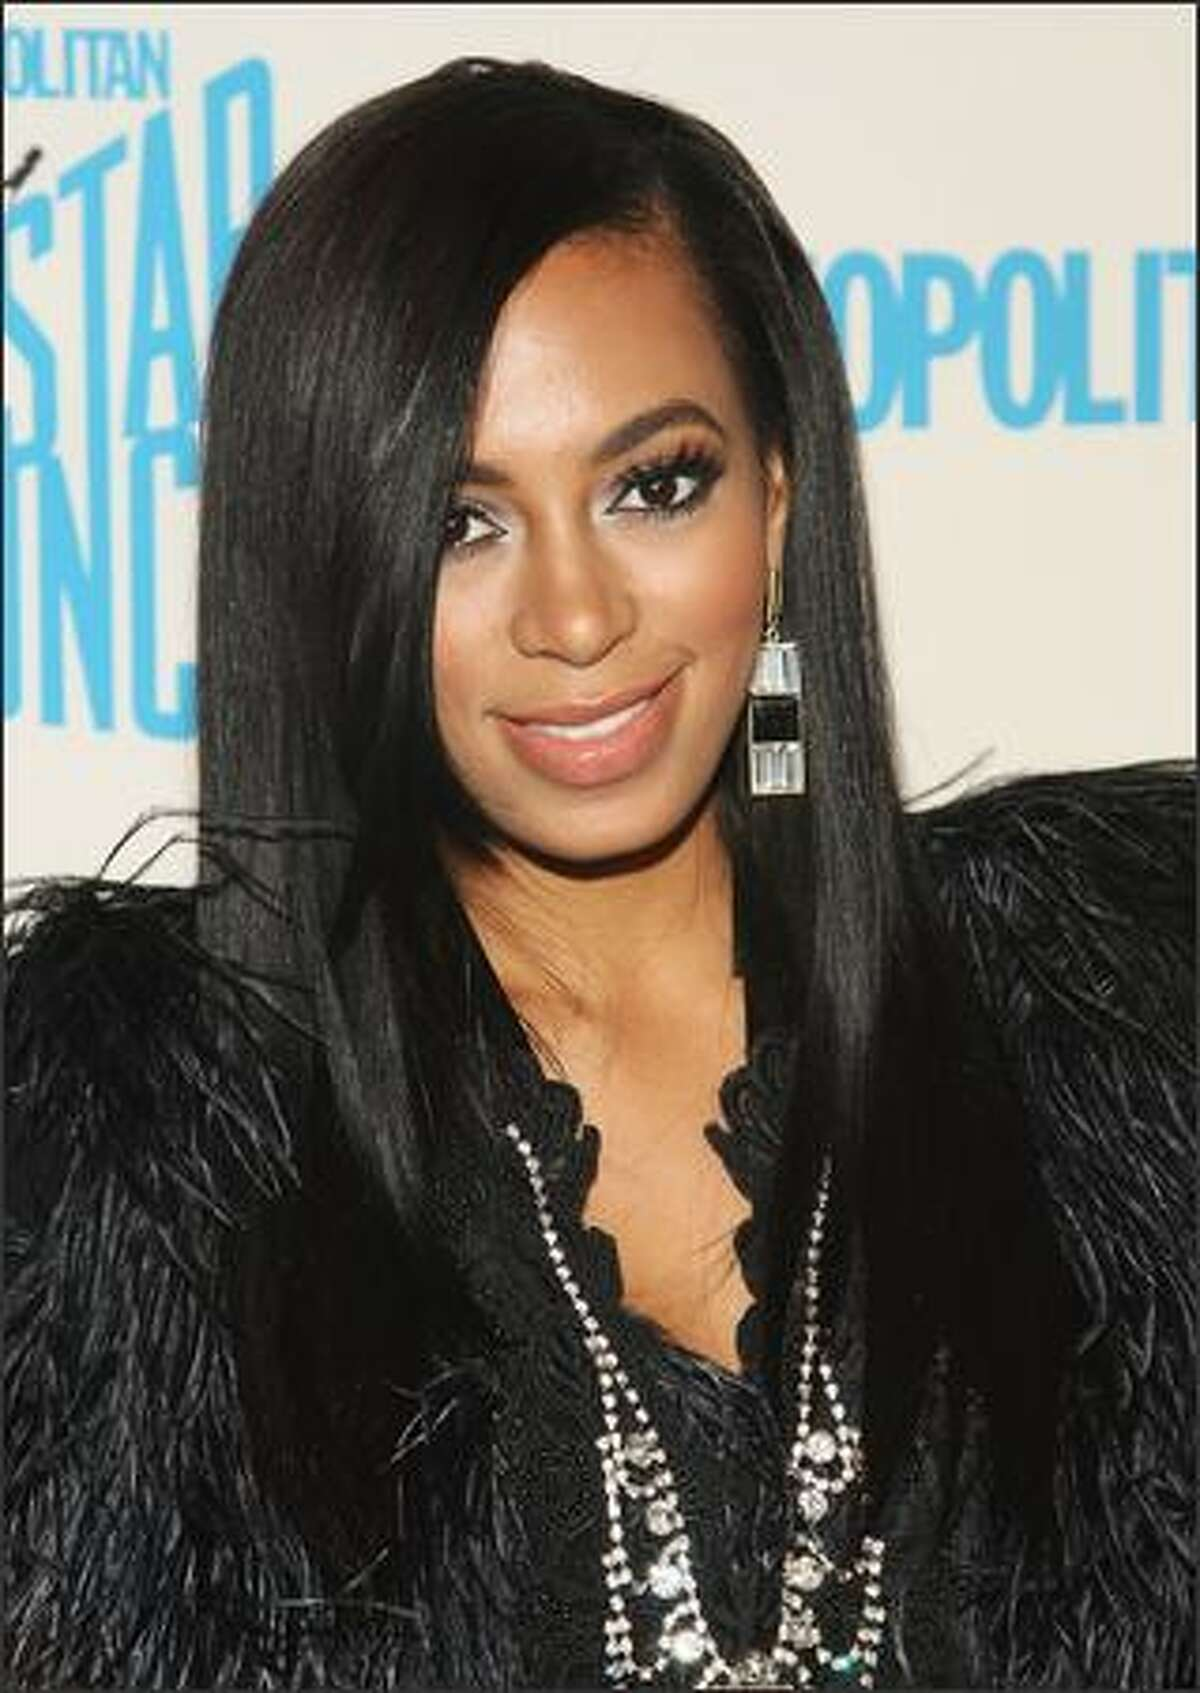 Singer Solange Knowles attends the Starlaunch Finale concert.